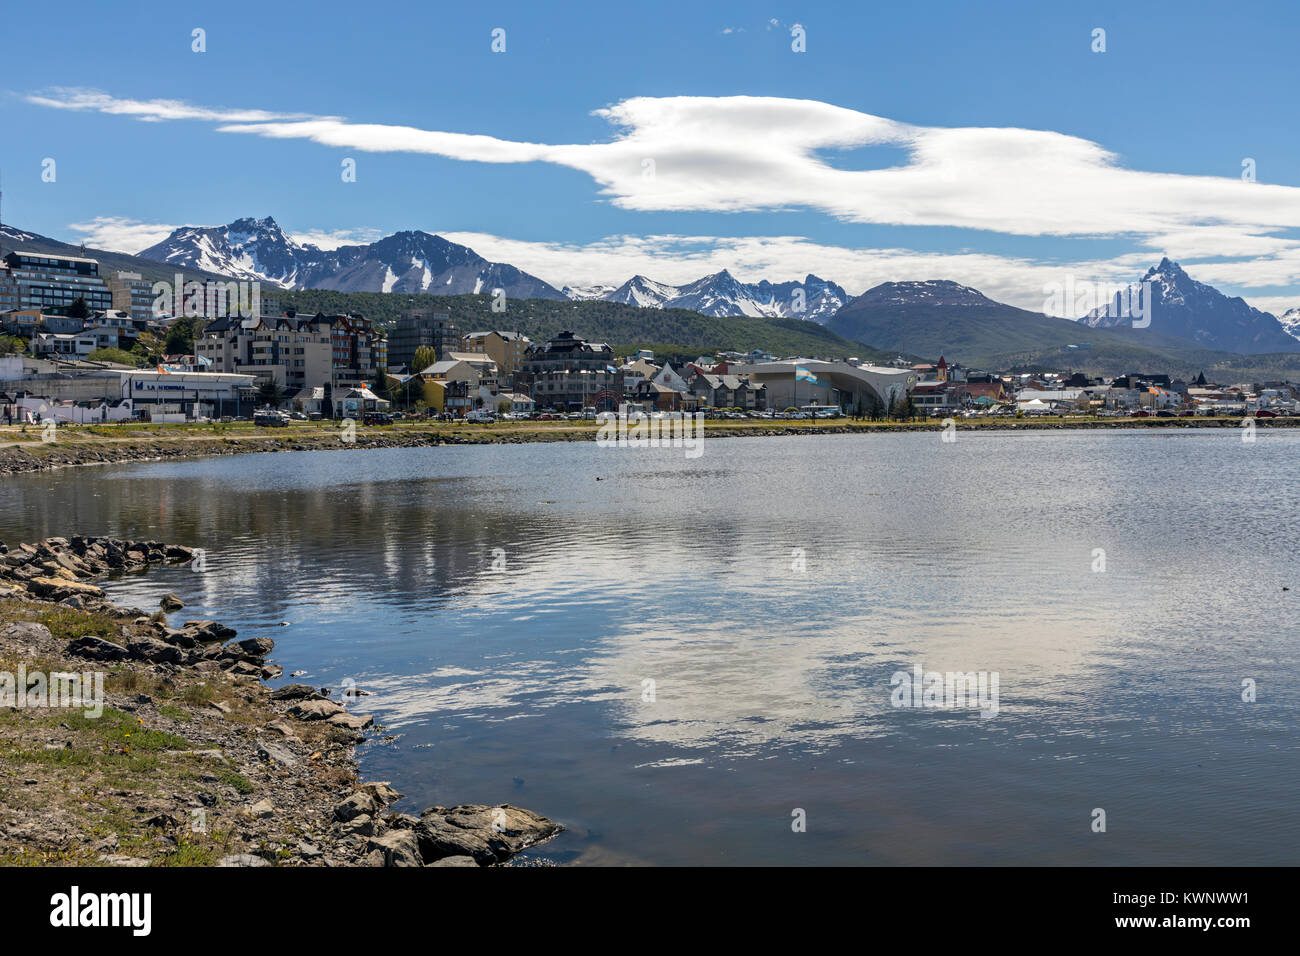 Town & mountain view of shipping port of Ushuaia; Argentina - Stock Image